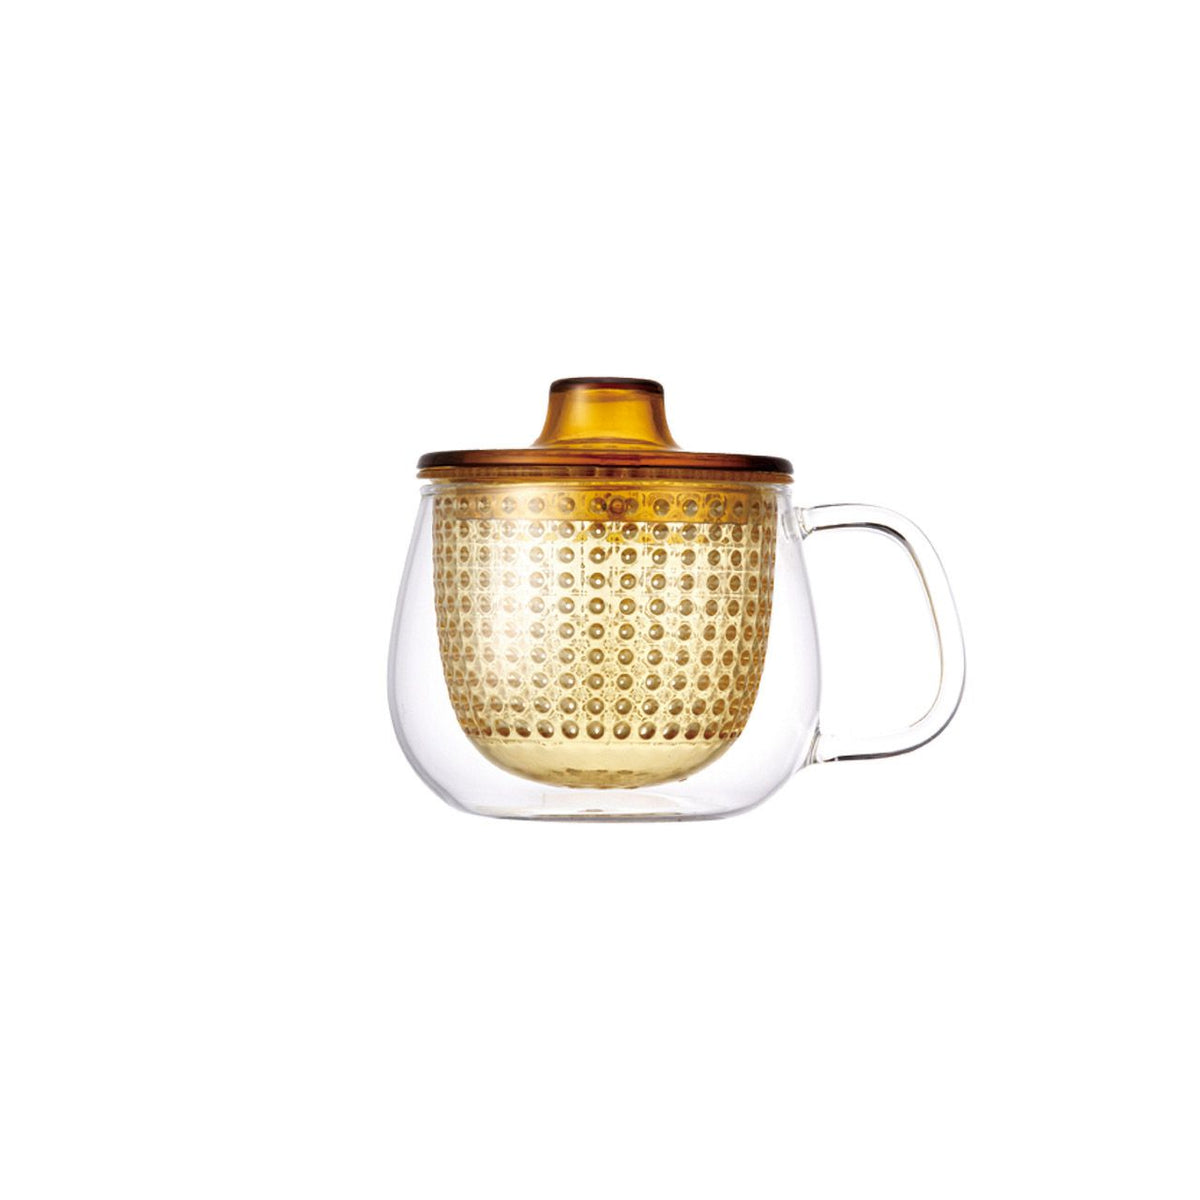 UNIMUG glass teapot in  yellow for loose leaf tea by The Rabbit Hole